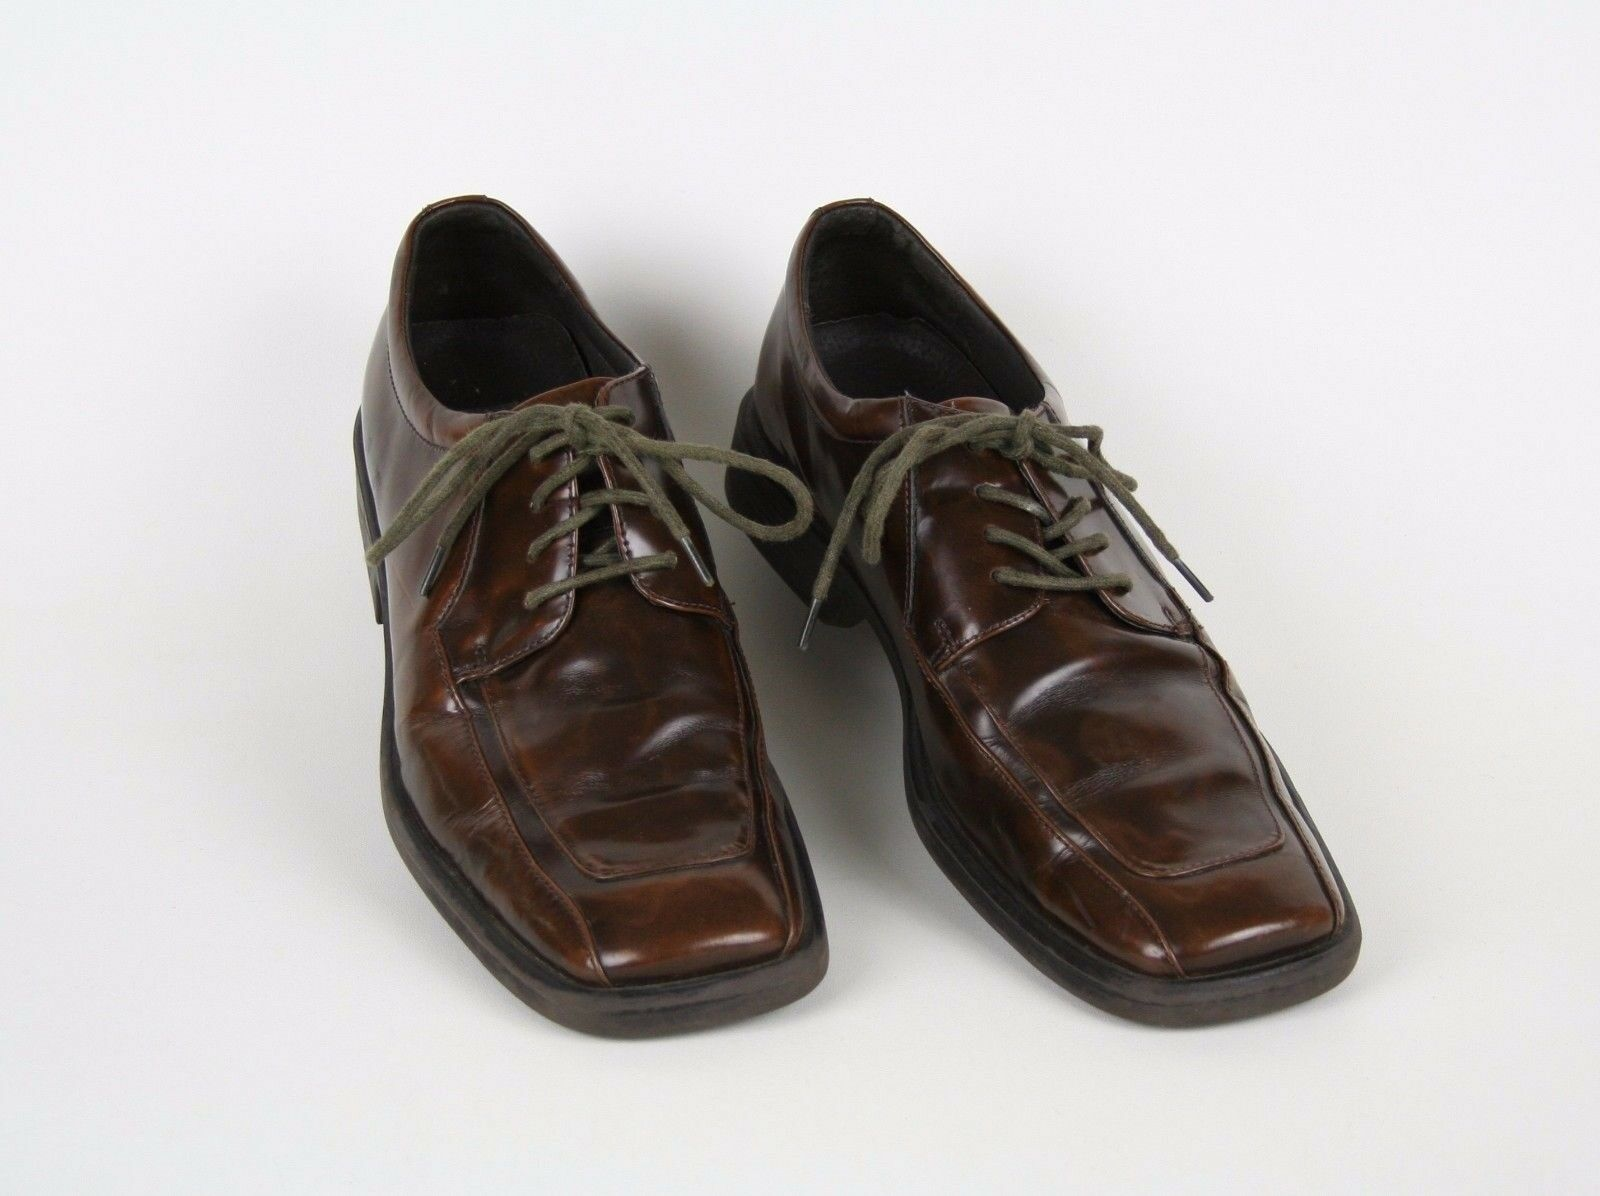 af33243187a ... KENNETH COLE REACTION Mens Brown Casual Dress Oxford Shoes Shoes Shoes  size 9.5 M 095134 ...